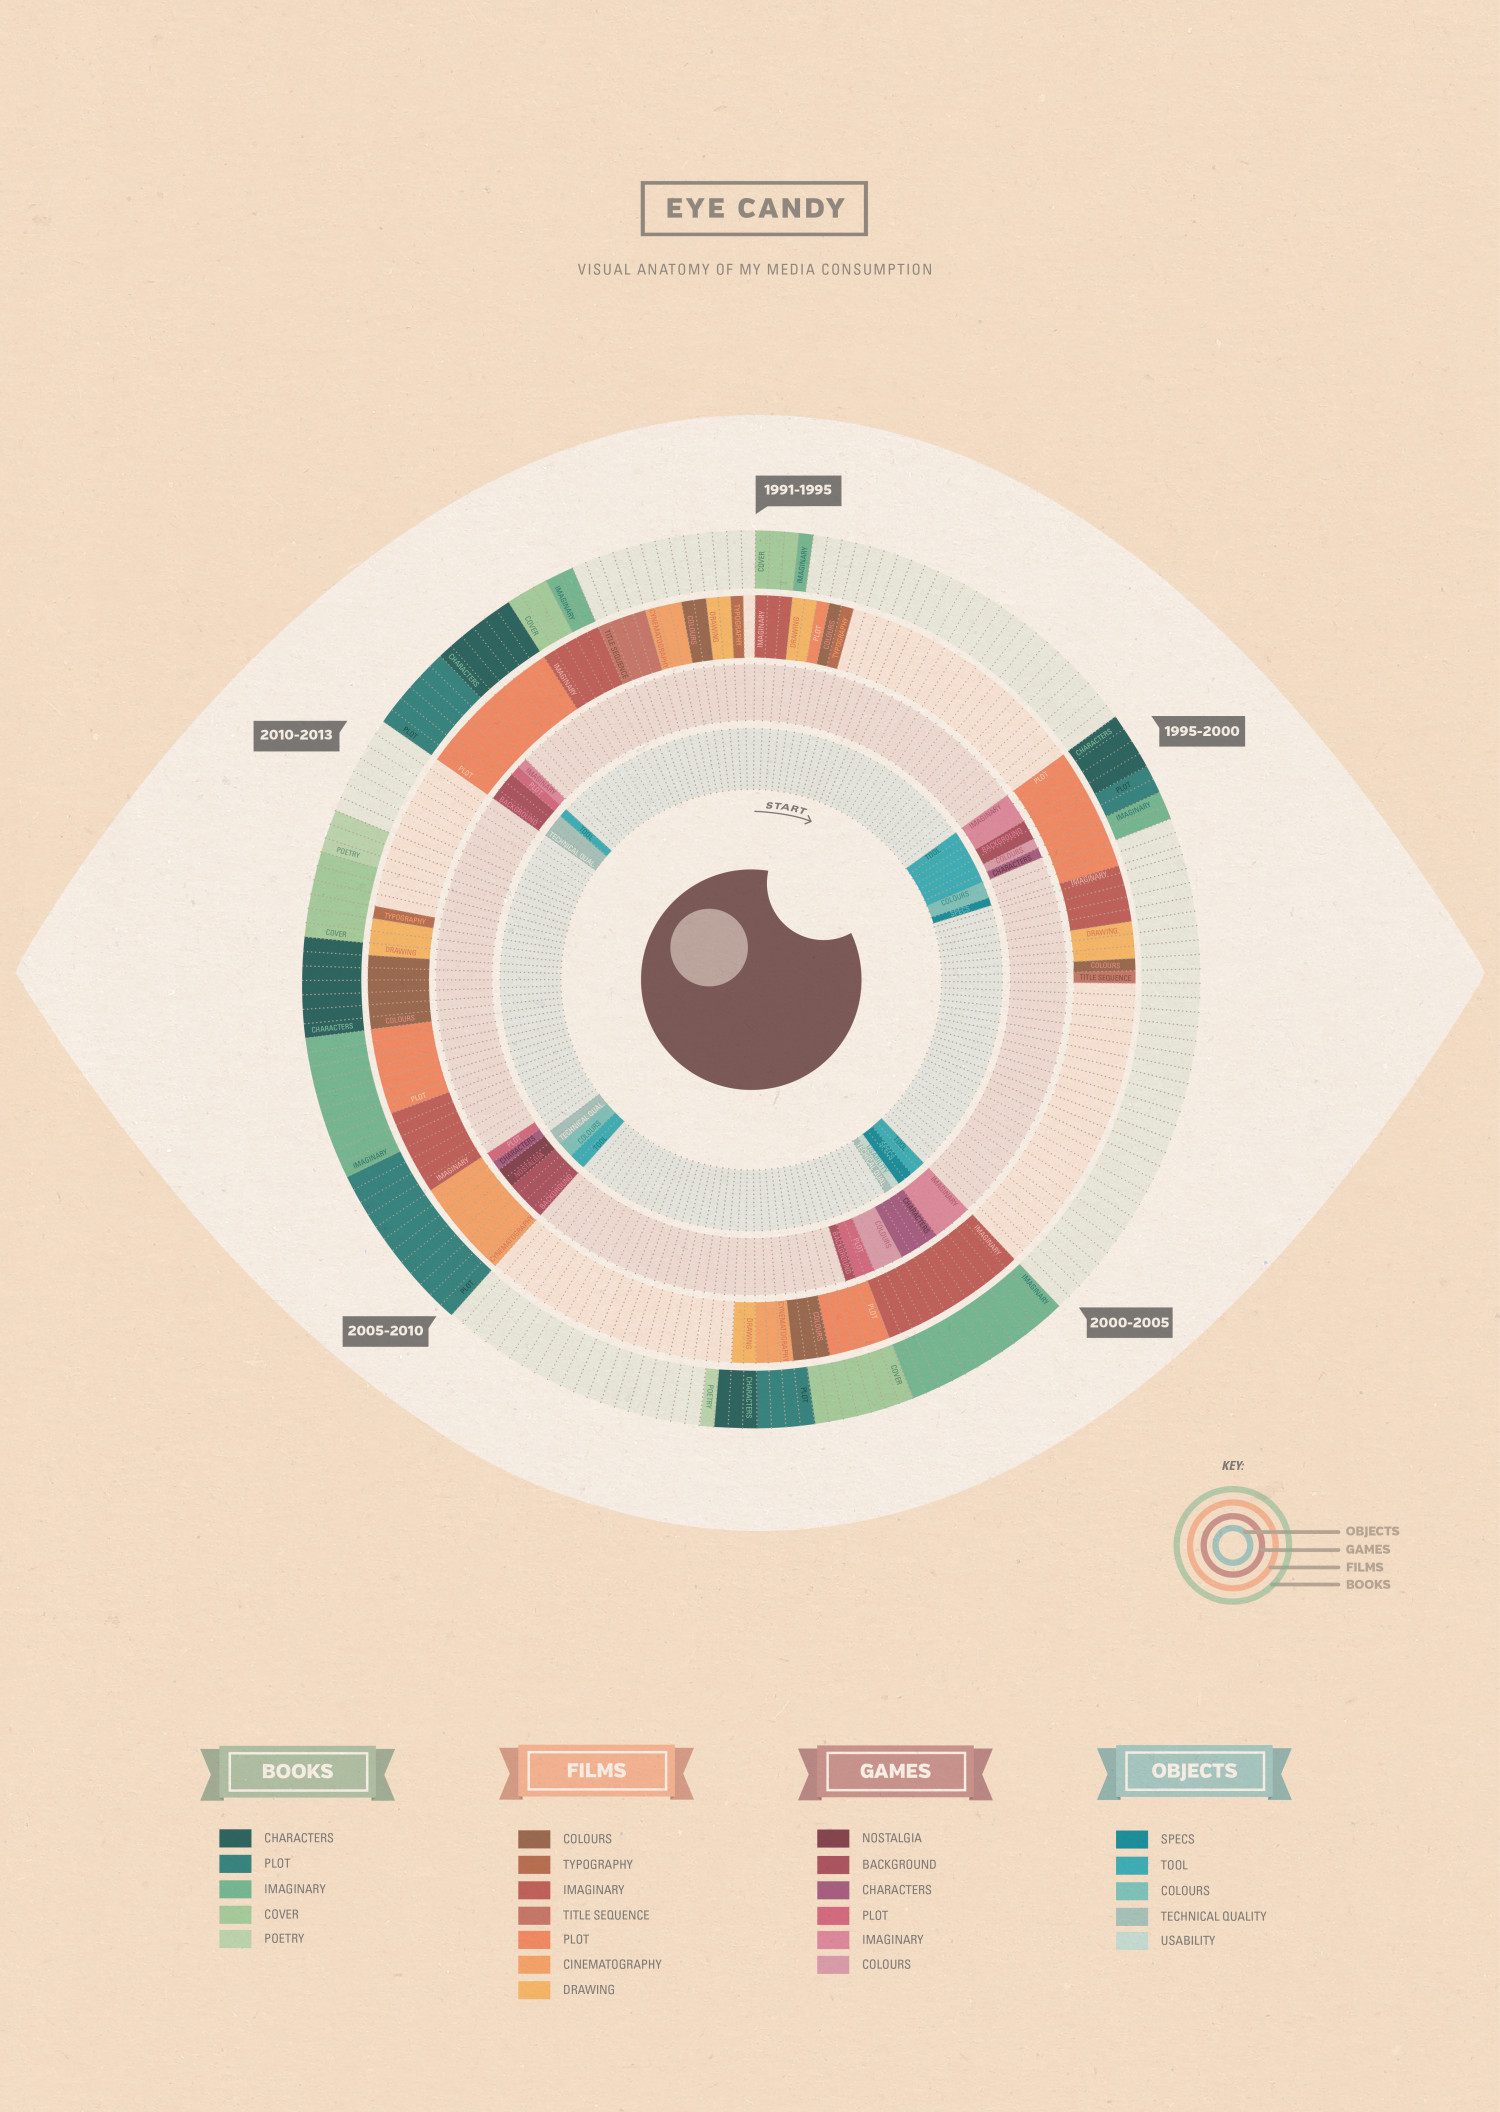 Eye Candy: Visual Media Consumption Infographic